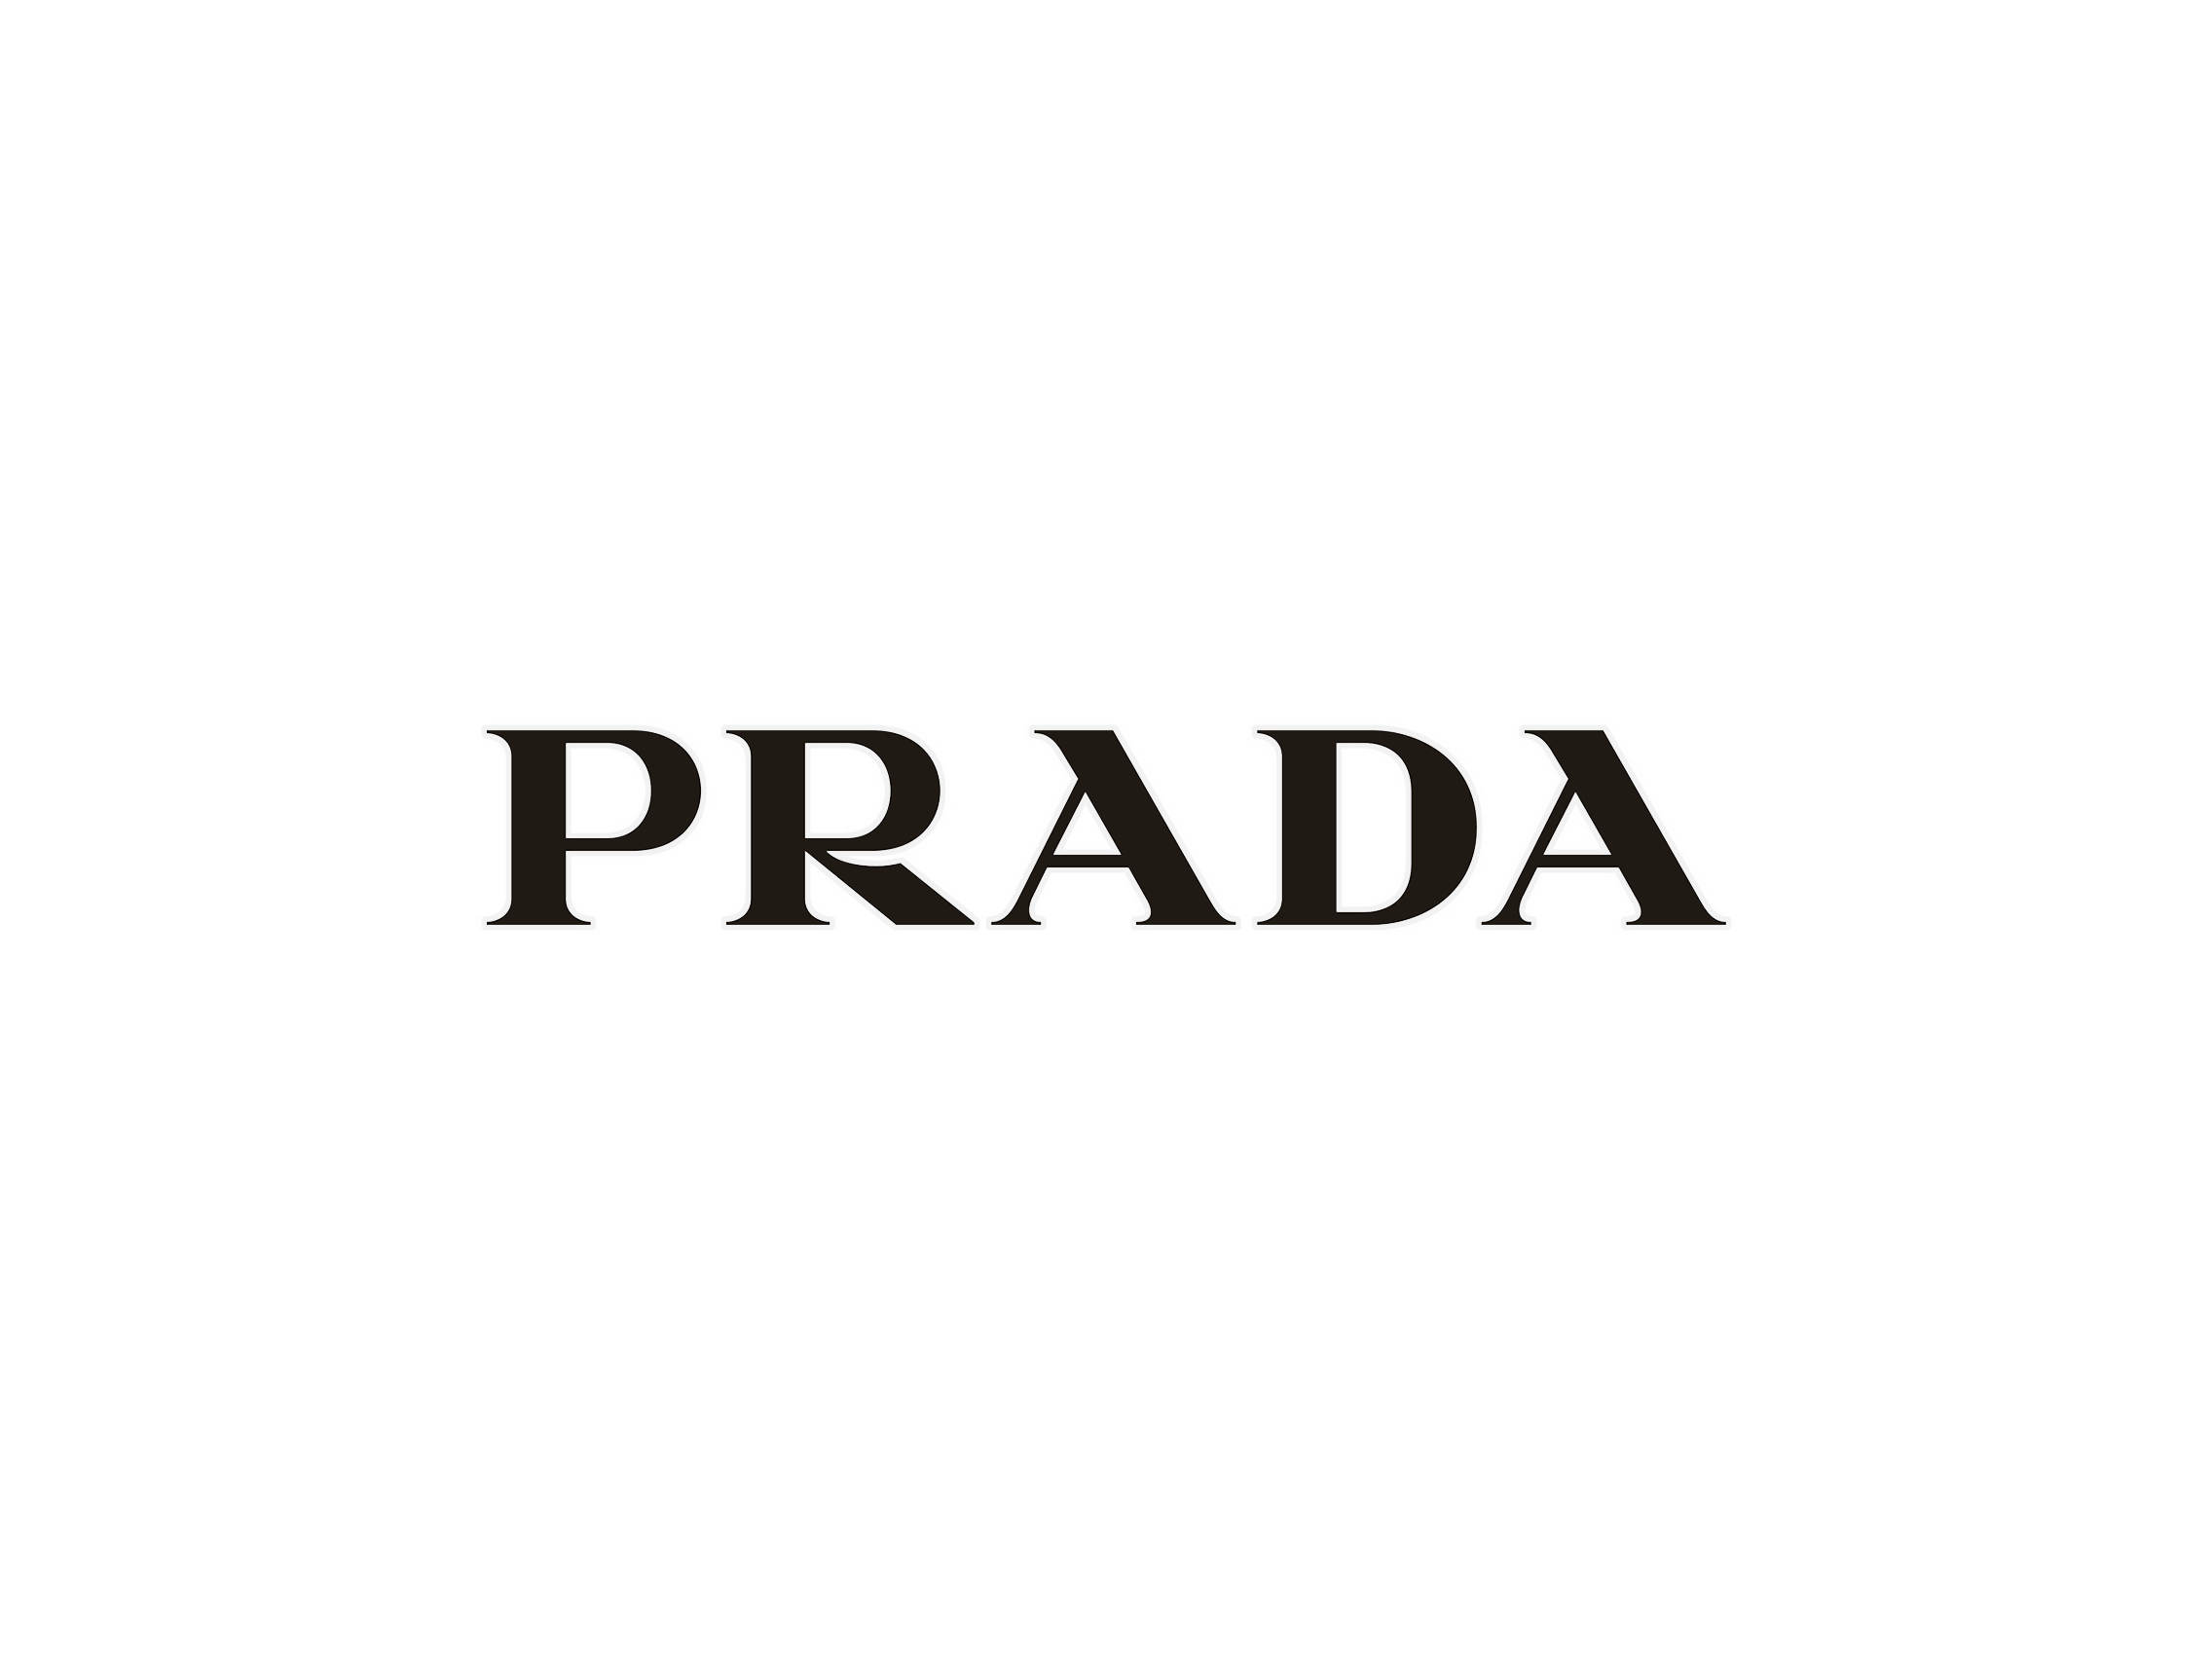 Prada Logo - Prada-logo - Austin Optometry Group